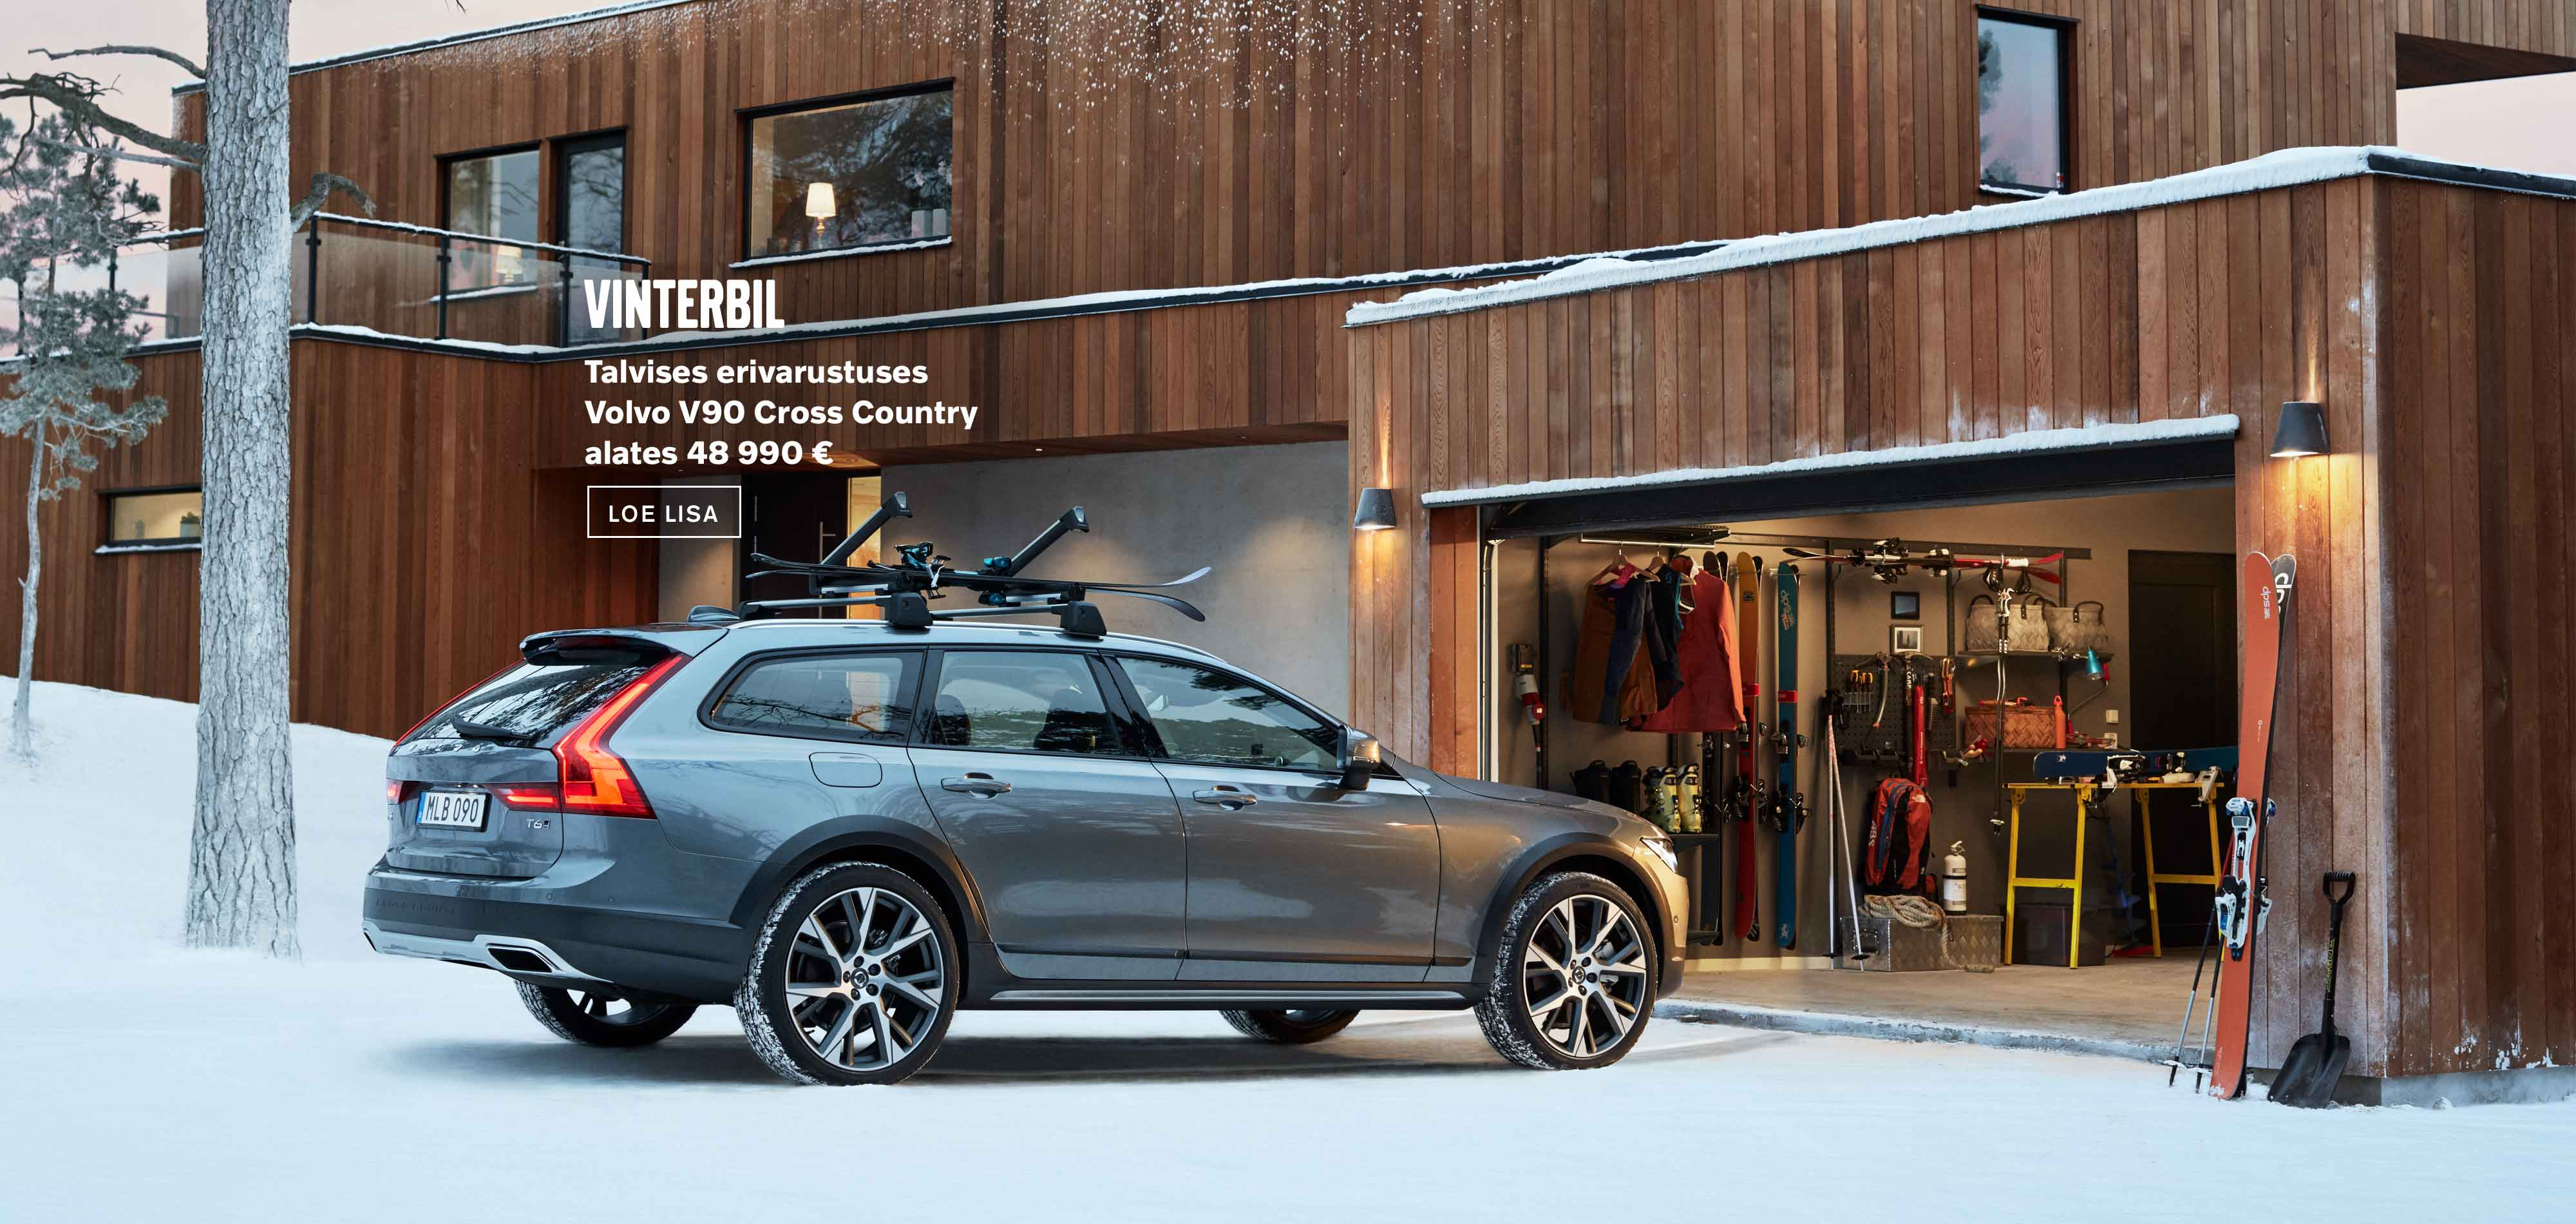 Vinterbil - Volvo V90 Cross Country